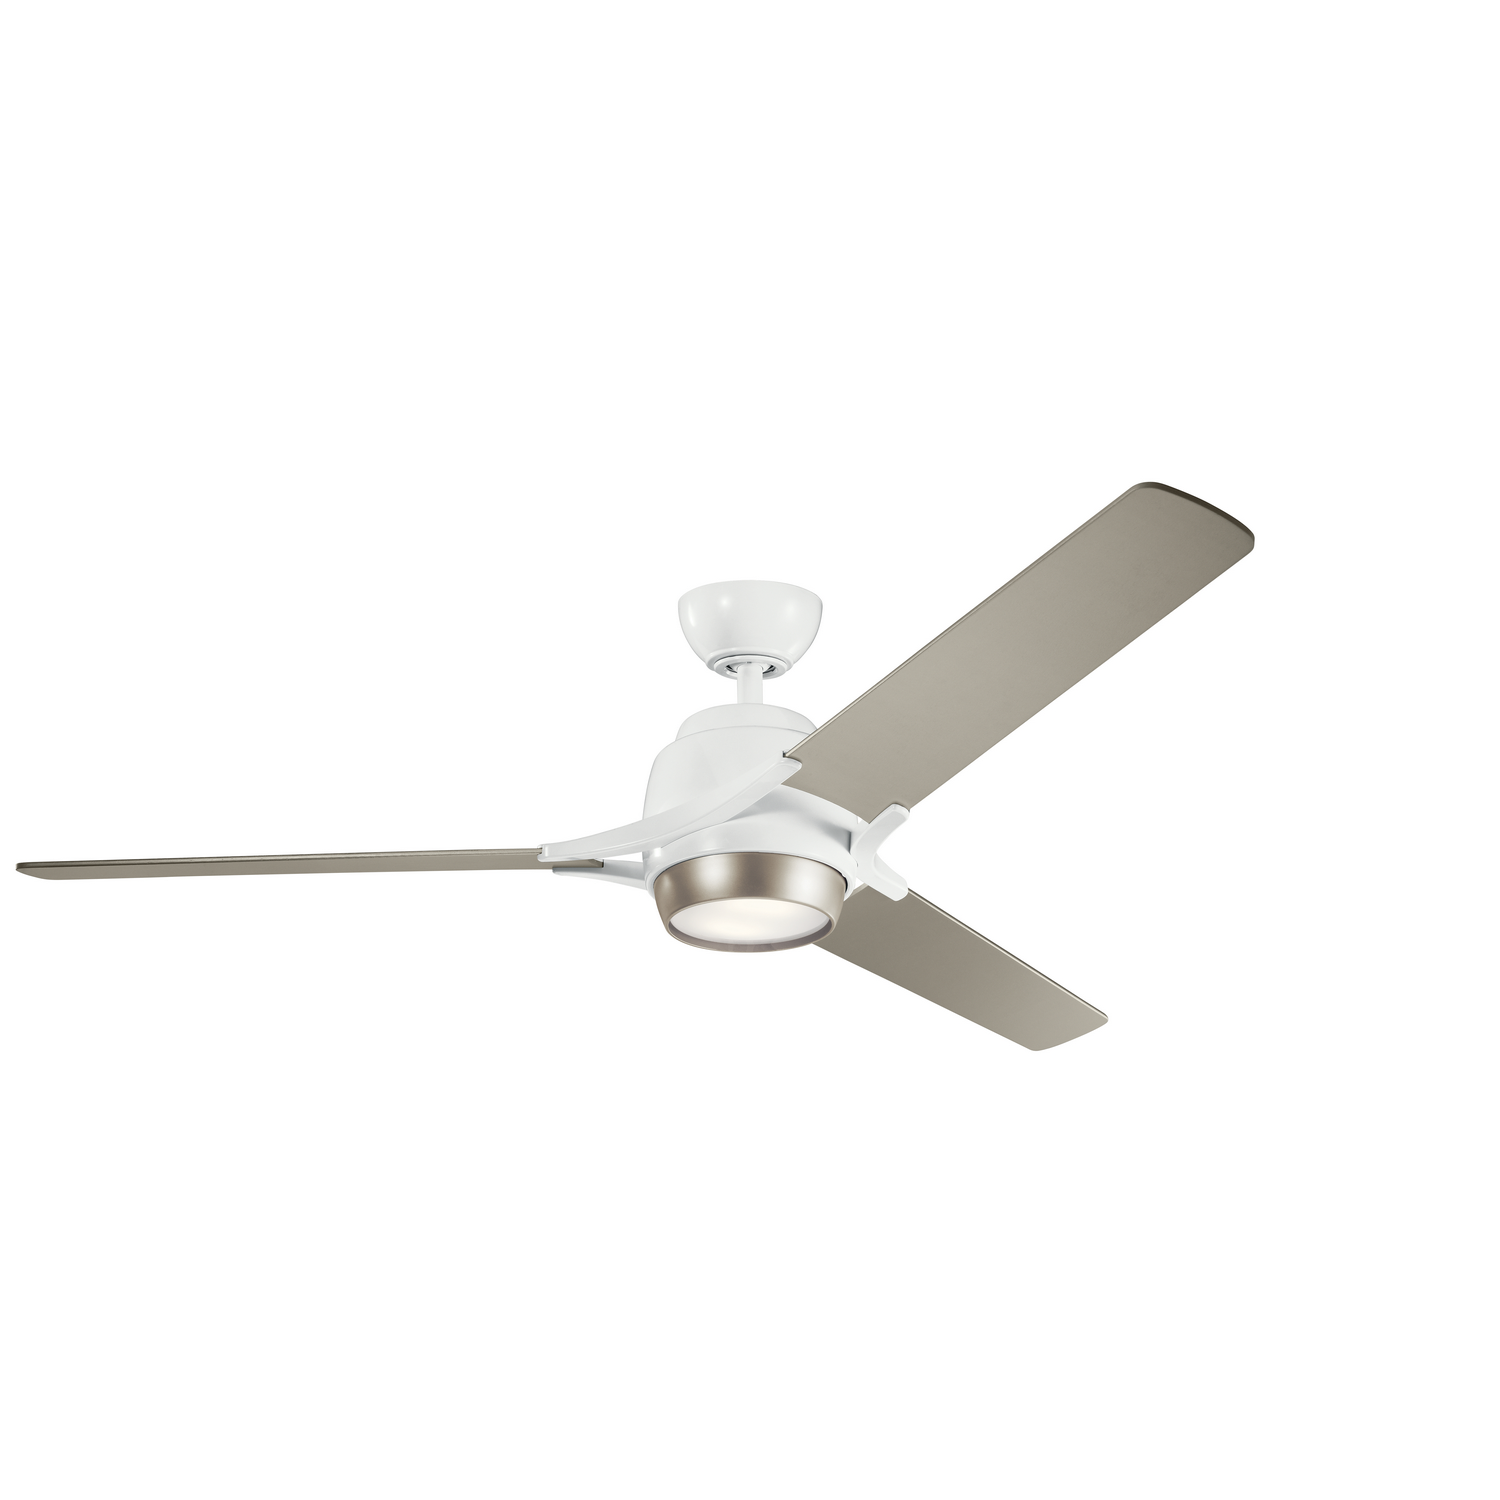 60 inchCeiling Fan from the Zeus collection by Kichler 300060WH